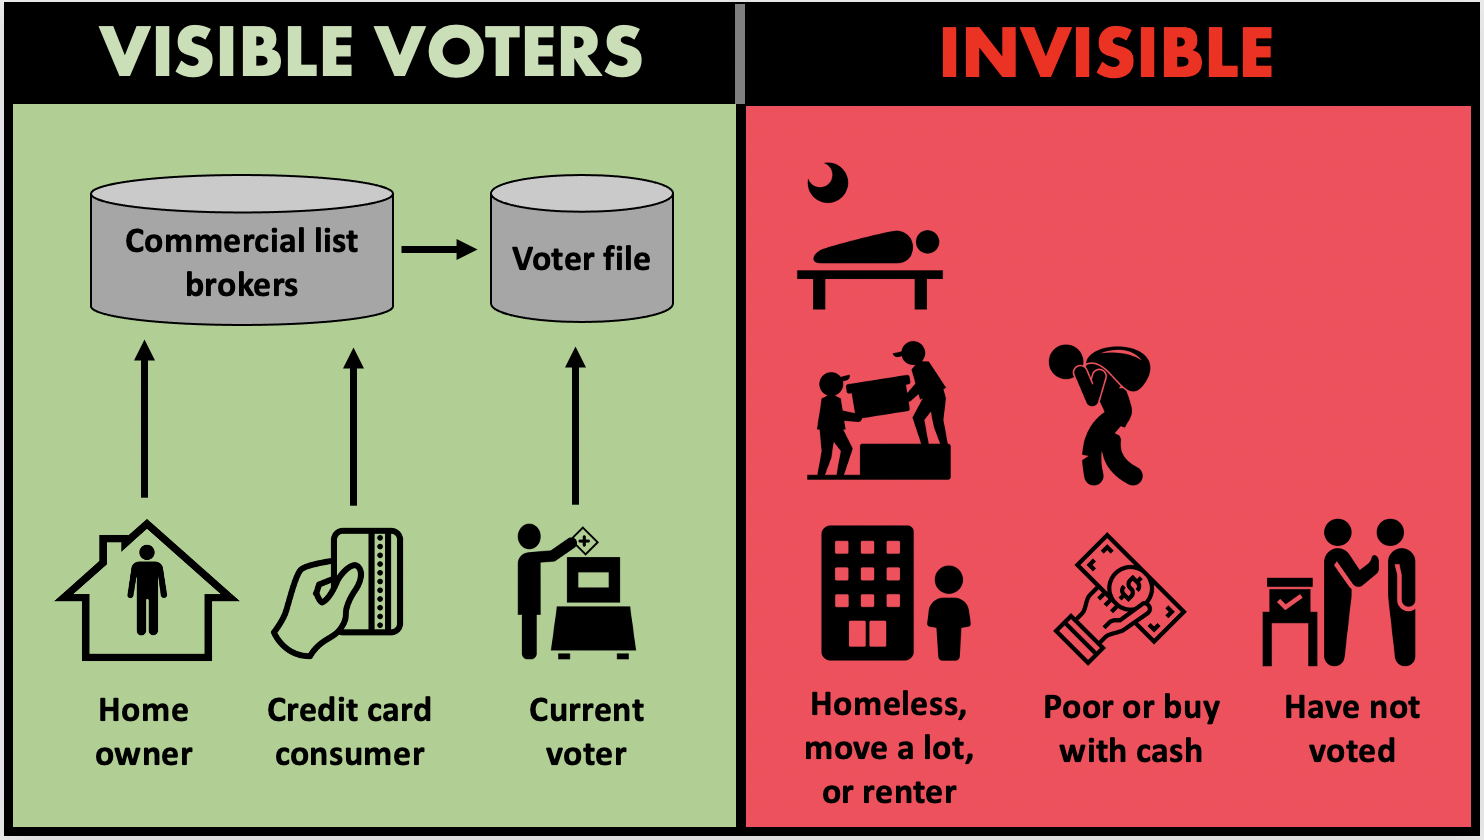 The invisible American doesn't appear in commercial lists nor the voter file based on how data is collected. It's time to think outside the box to give them a voice in elections.